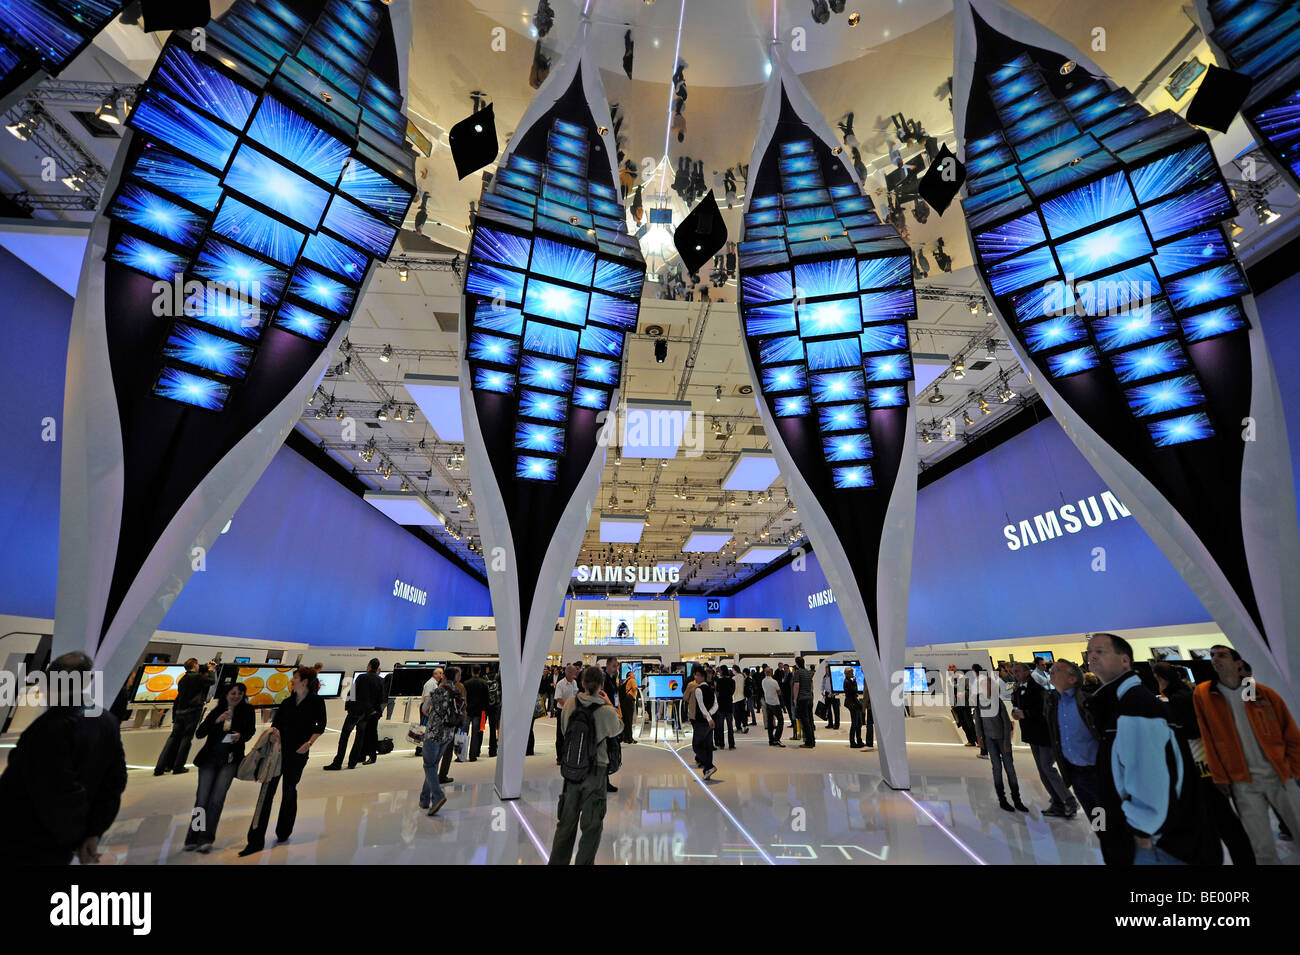 exhibition hall of samsung at the ifa internationale funkaustellung stock photo 25816191 alamy. Black Bedroom Furniture Sets. Home Design Ideas